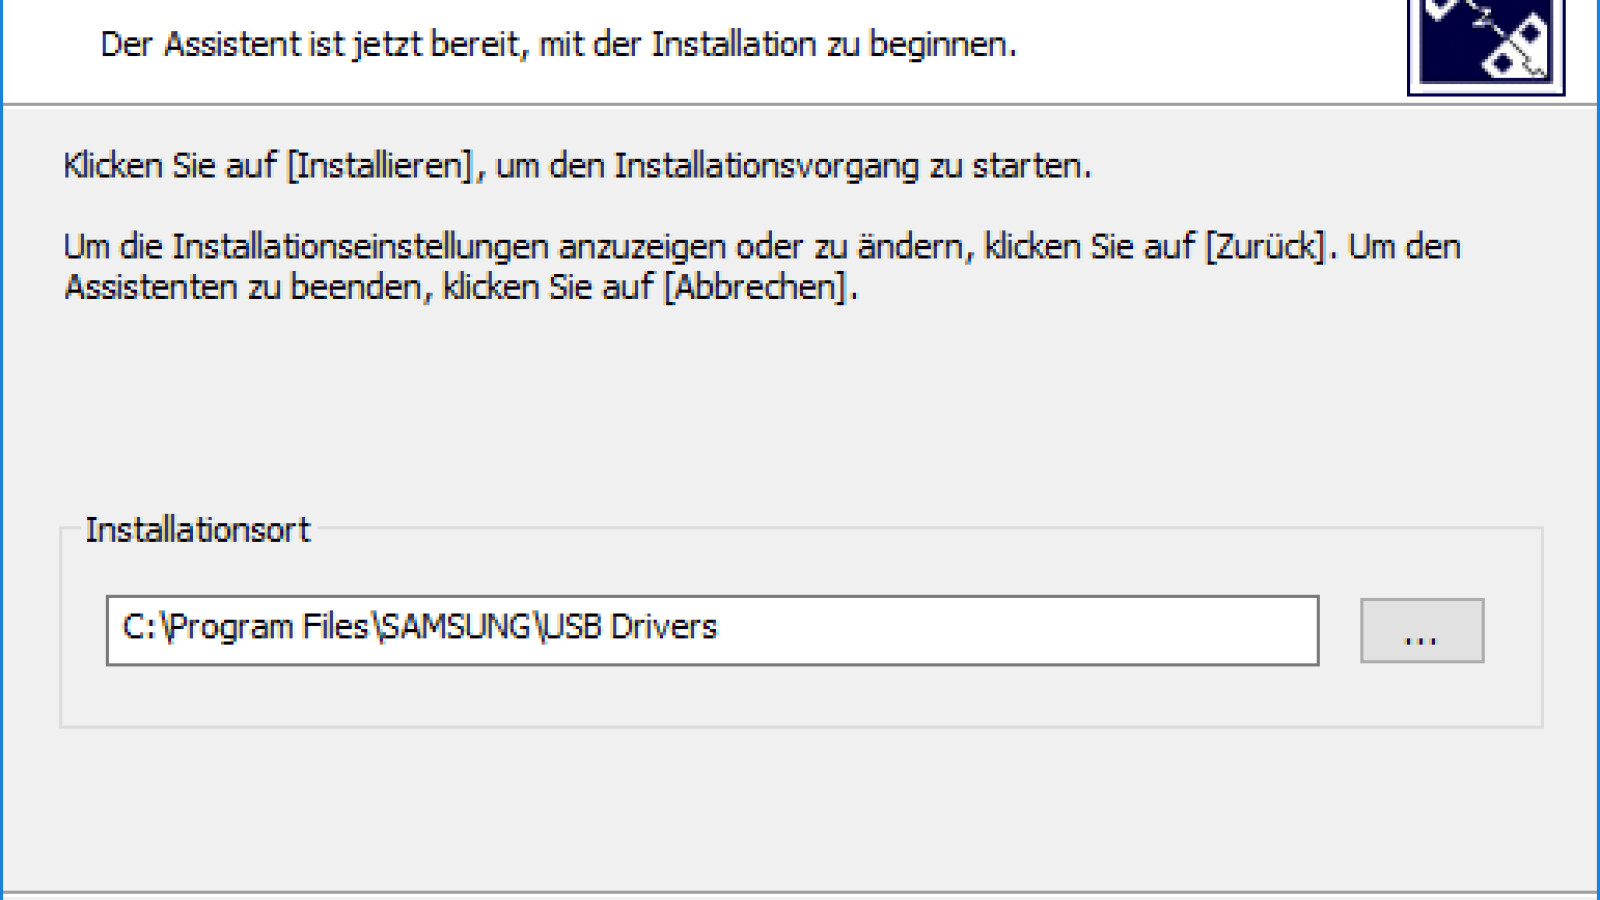 Samsung Android USB Driver for Windows - Download - NETZWELT